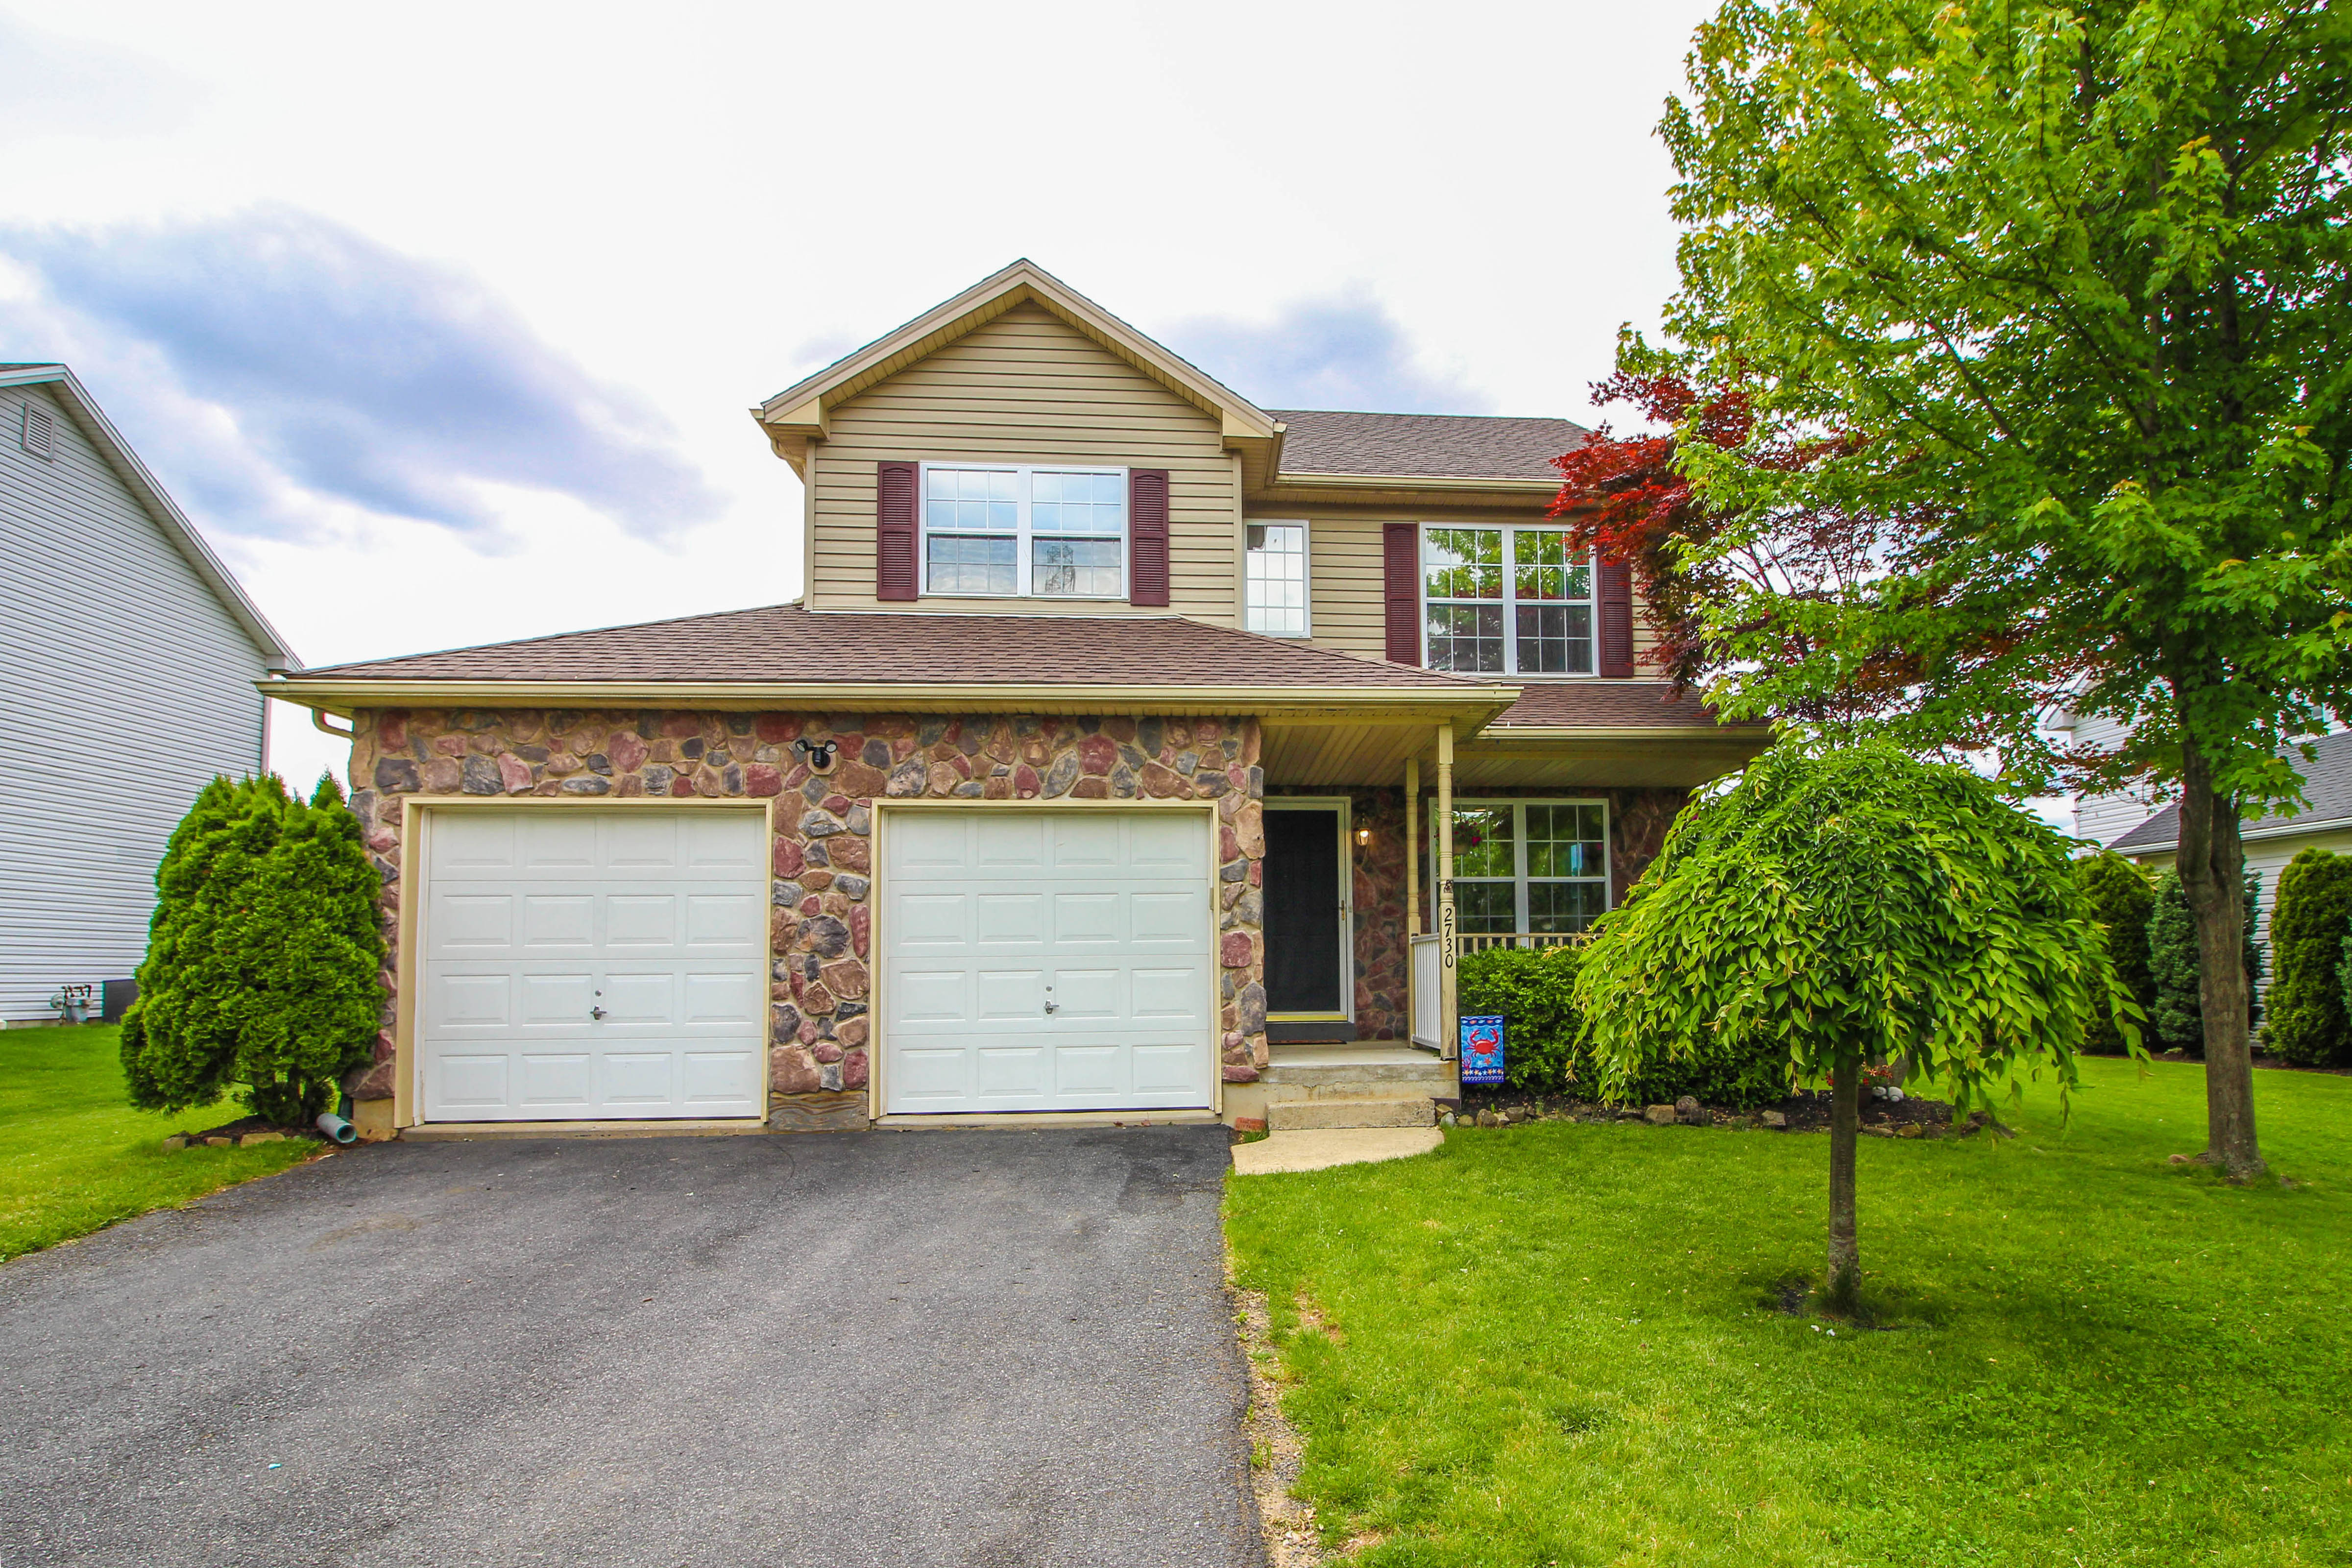 Forks Twp Home For Sale Just Listed in Vista Estates!